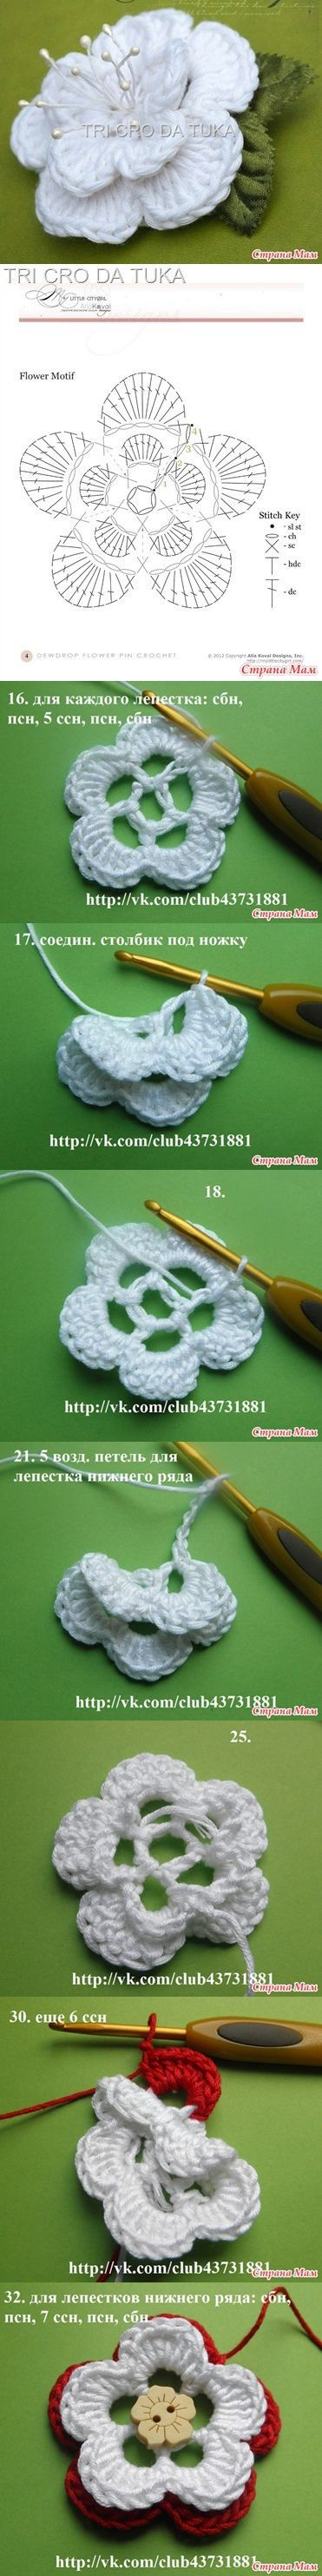 tutorial-flores-croche-9